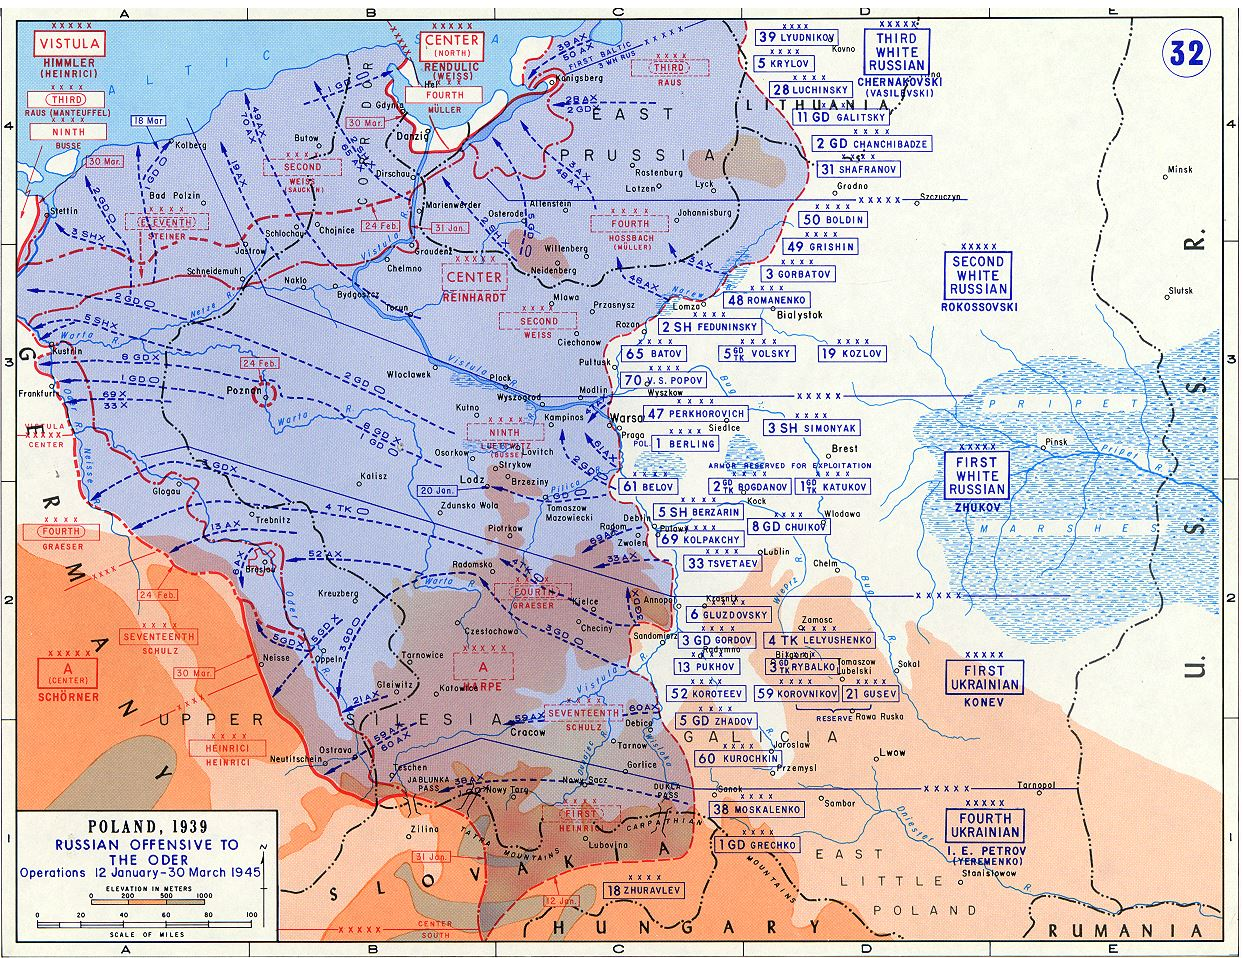 Axis collapse, Allied victory PETIT DIEULOIS